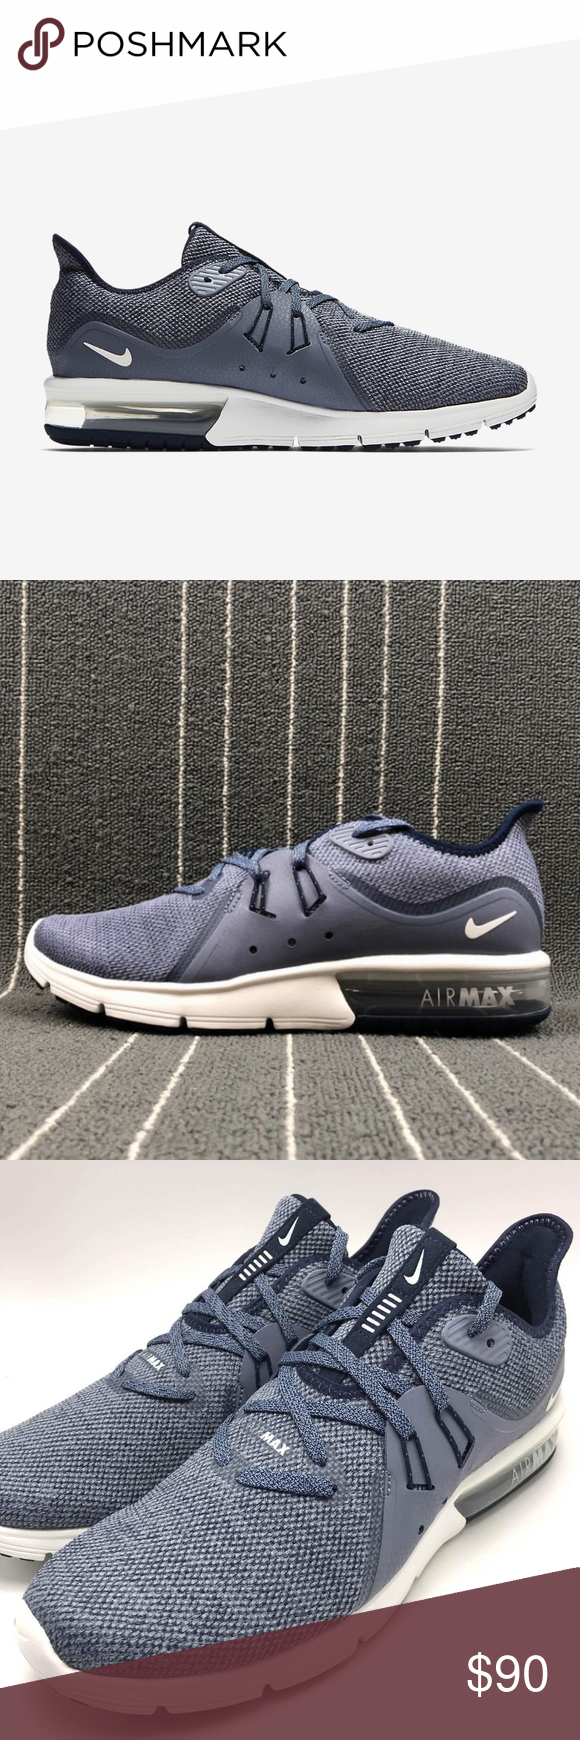 Men s Nike Air Max Sequent 3 (Size 10) Brand new in box 100% authentic  Excellent condition Size 10 Men Obsidian(blue)  Summit white color way  Ships doubled ... 915e9fd0a8